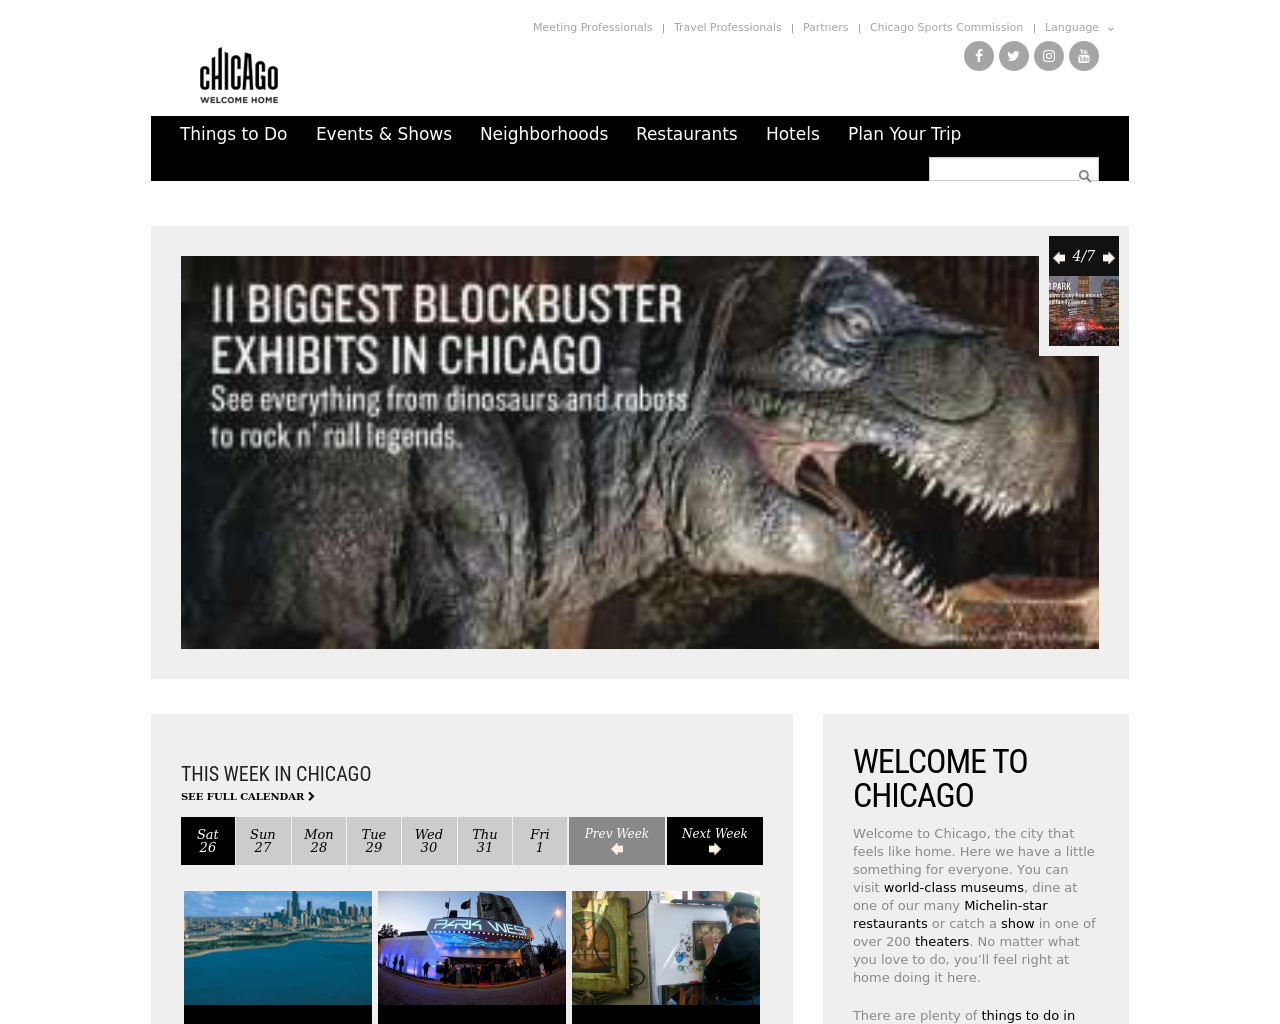 Choose-Chicago-Advertising-Reviews-Pricing